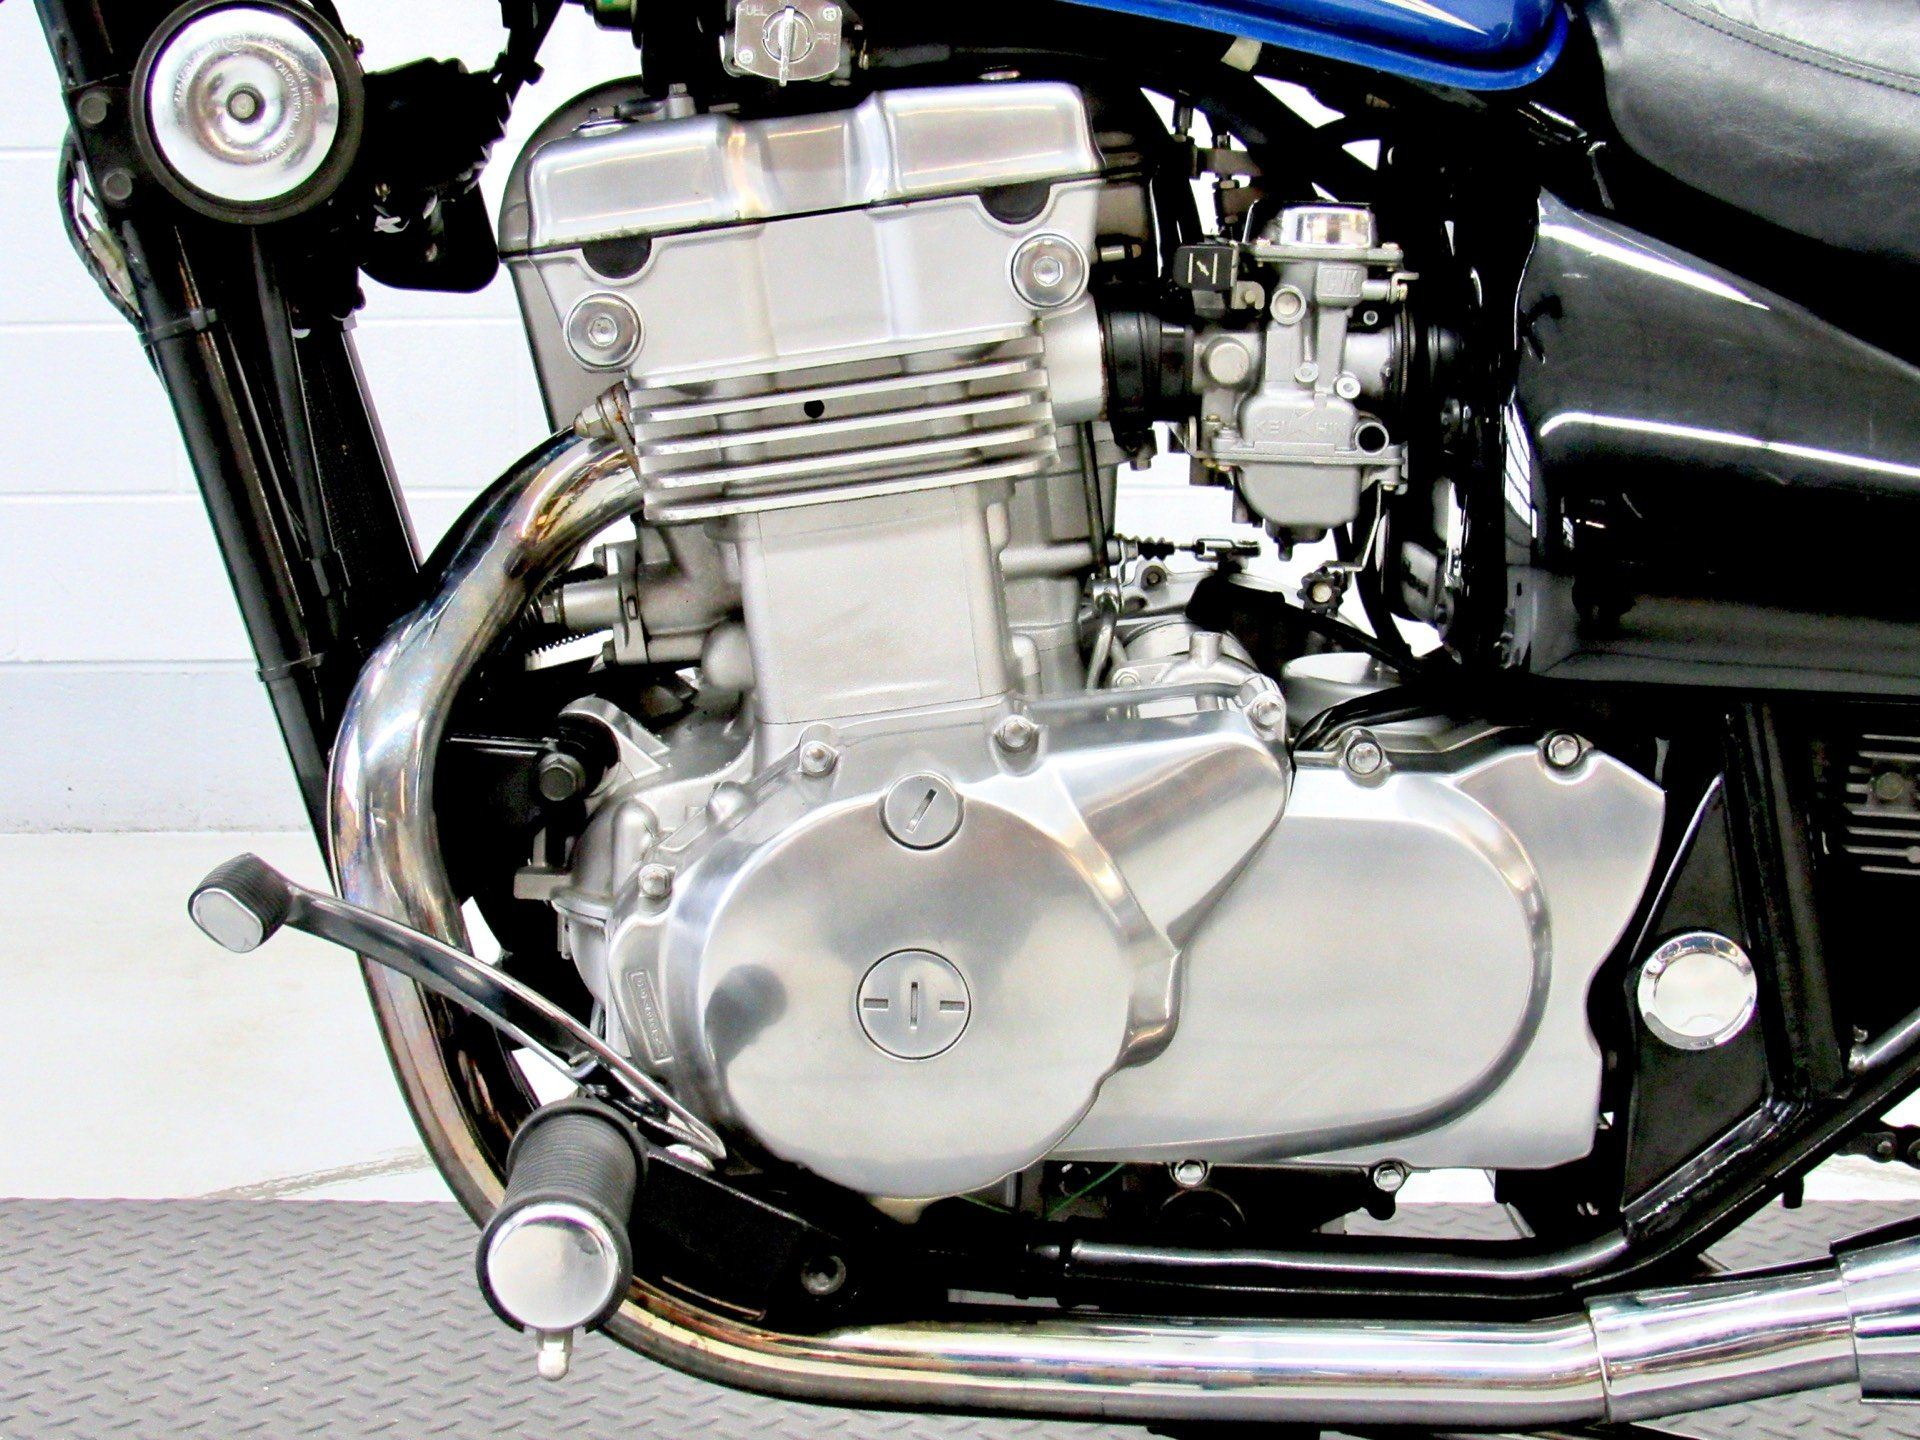 2005 Kawasaki Vulcan™ 500 LTD in Fredericksburg, Virginia - Photo 19